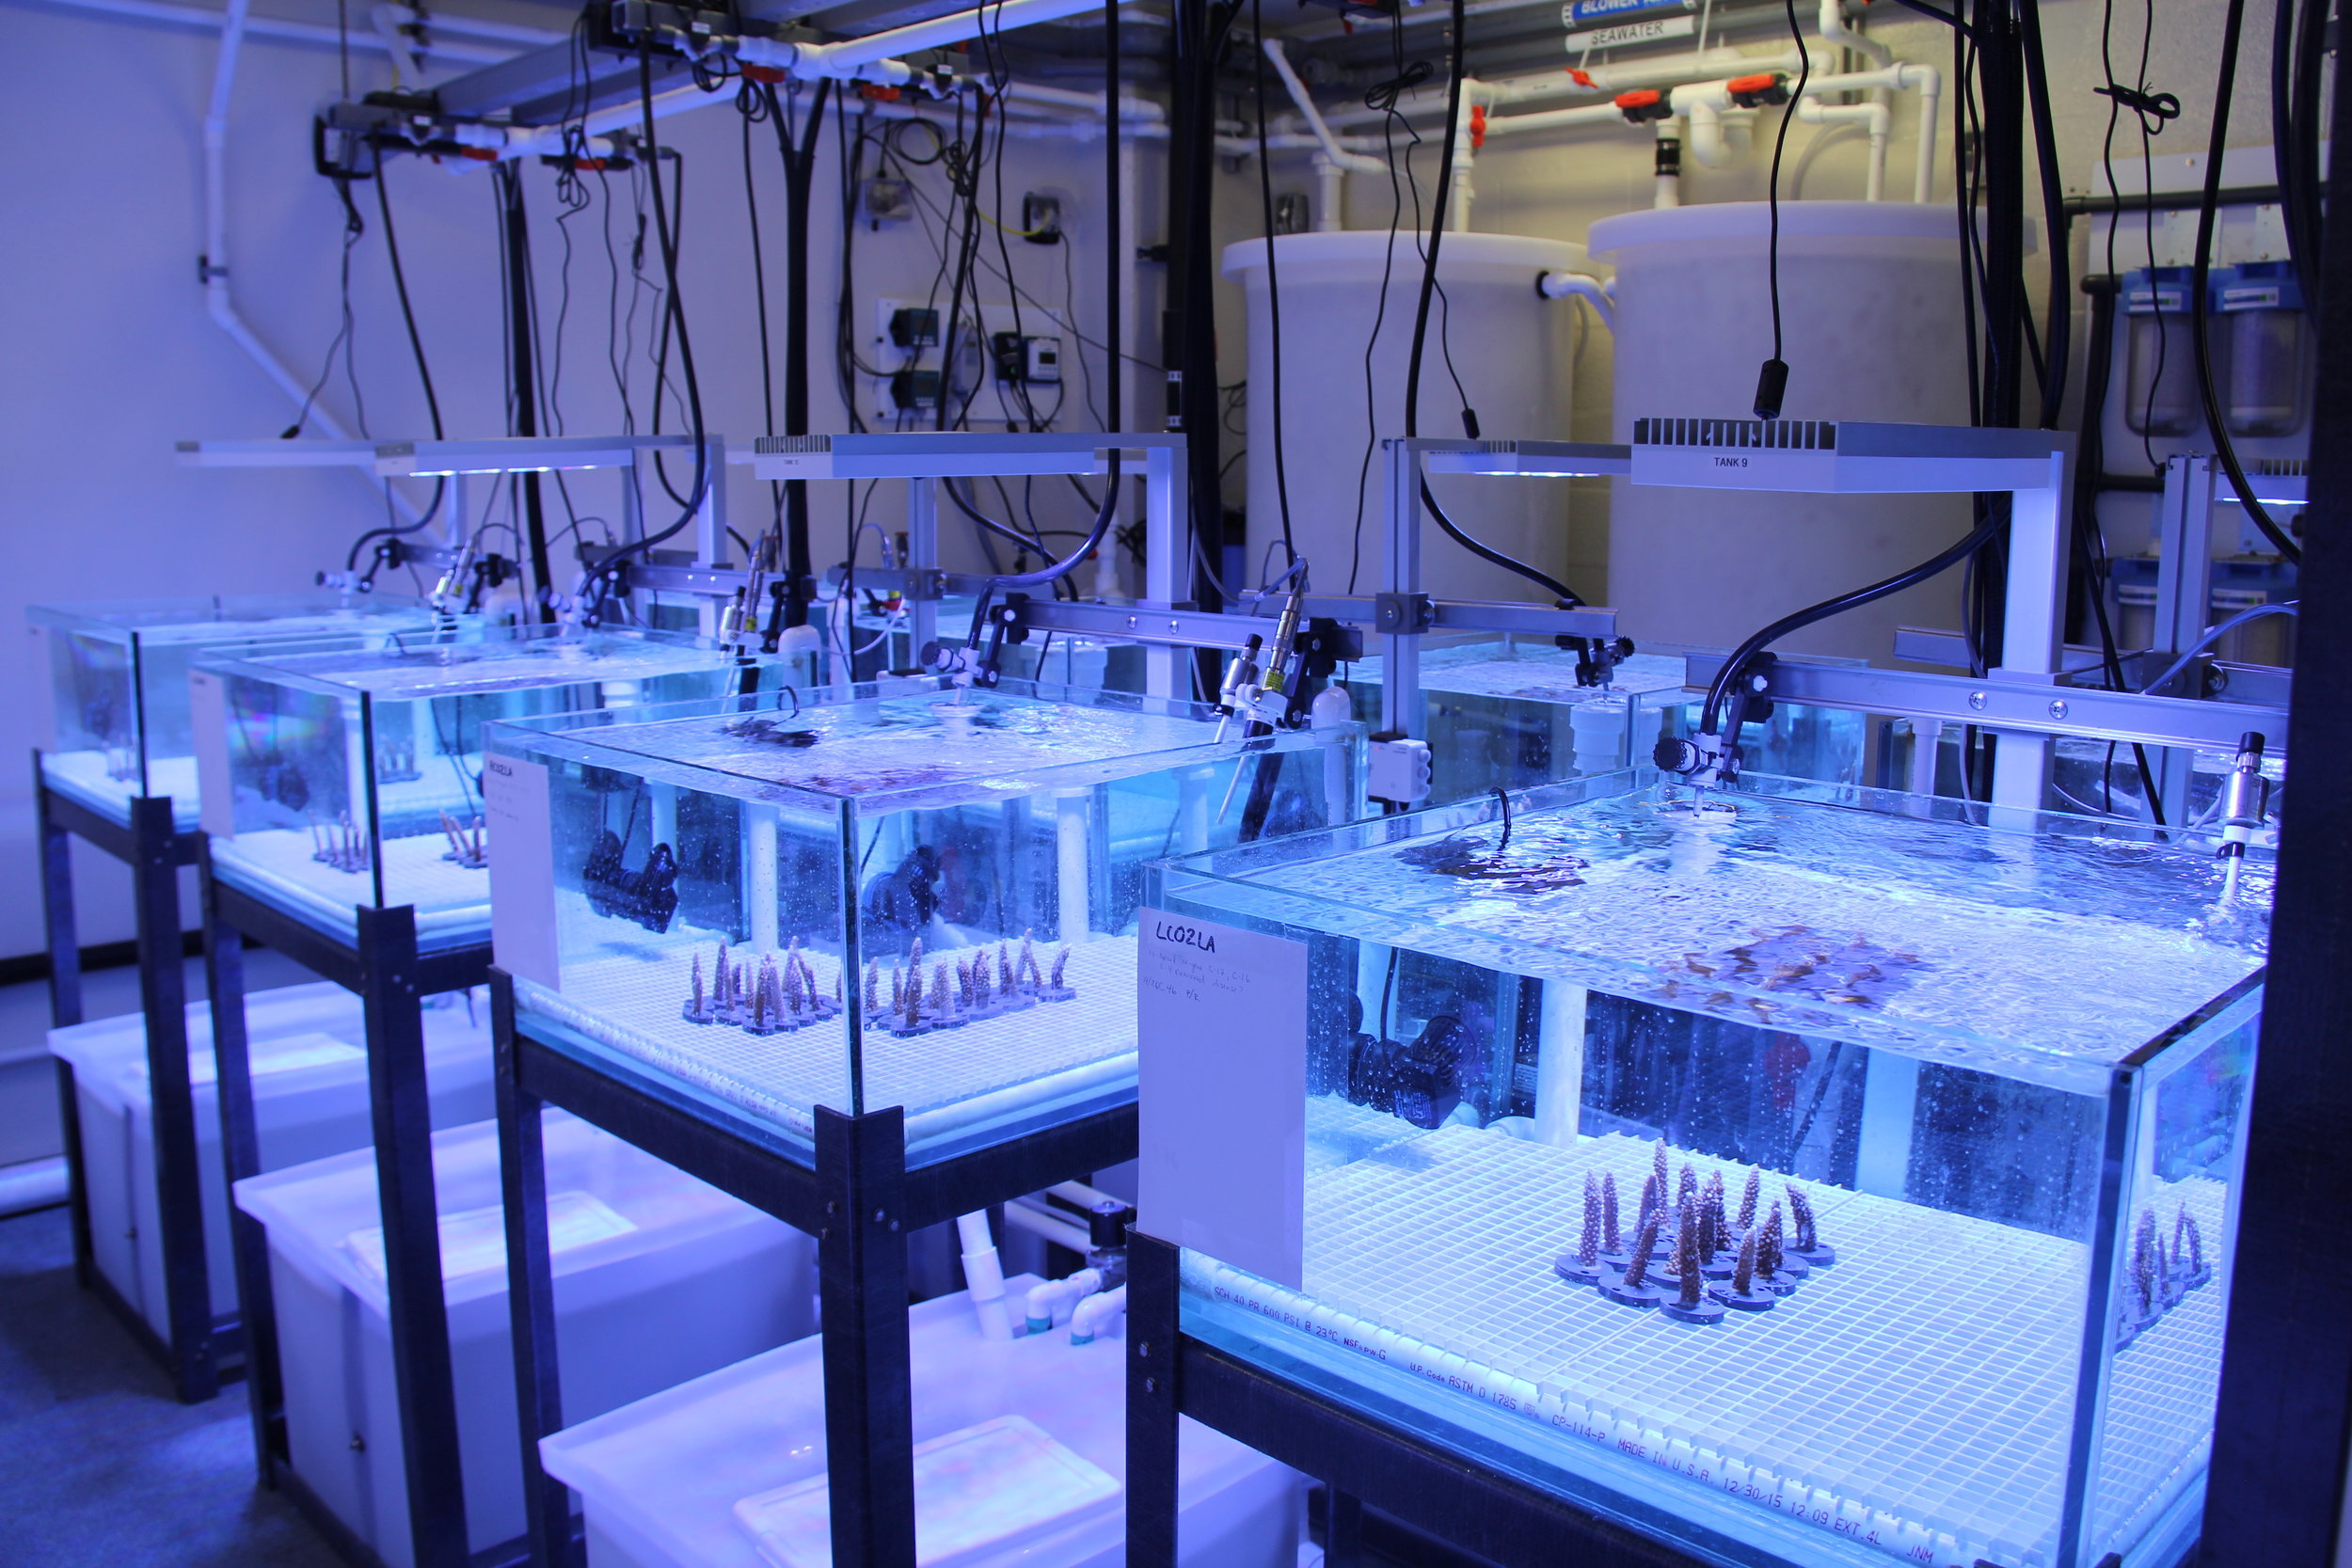 In this lab, corals are subjected to stressors to make them more resilient. Photo credit: NOAA